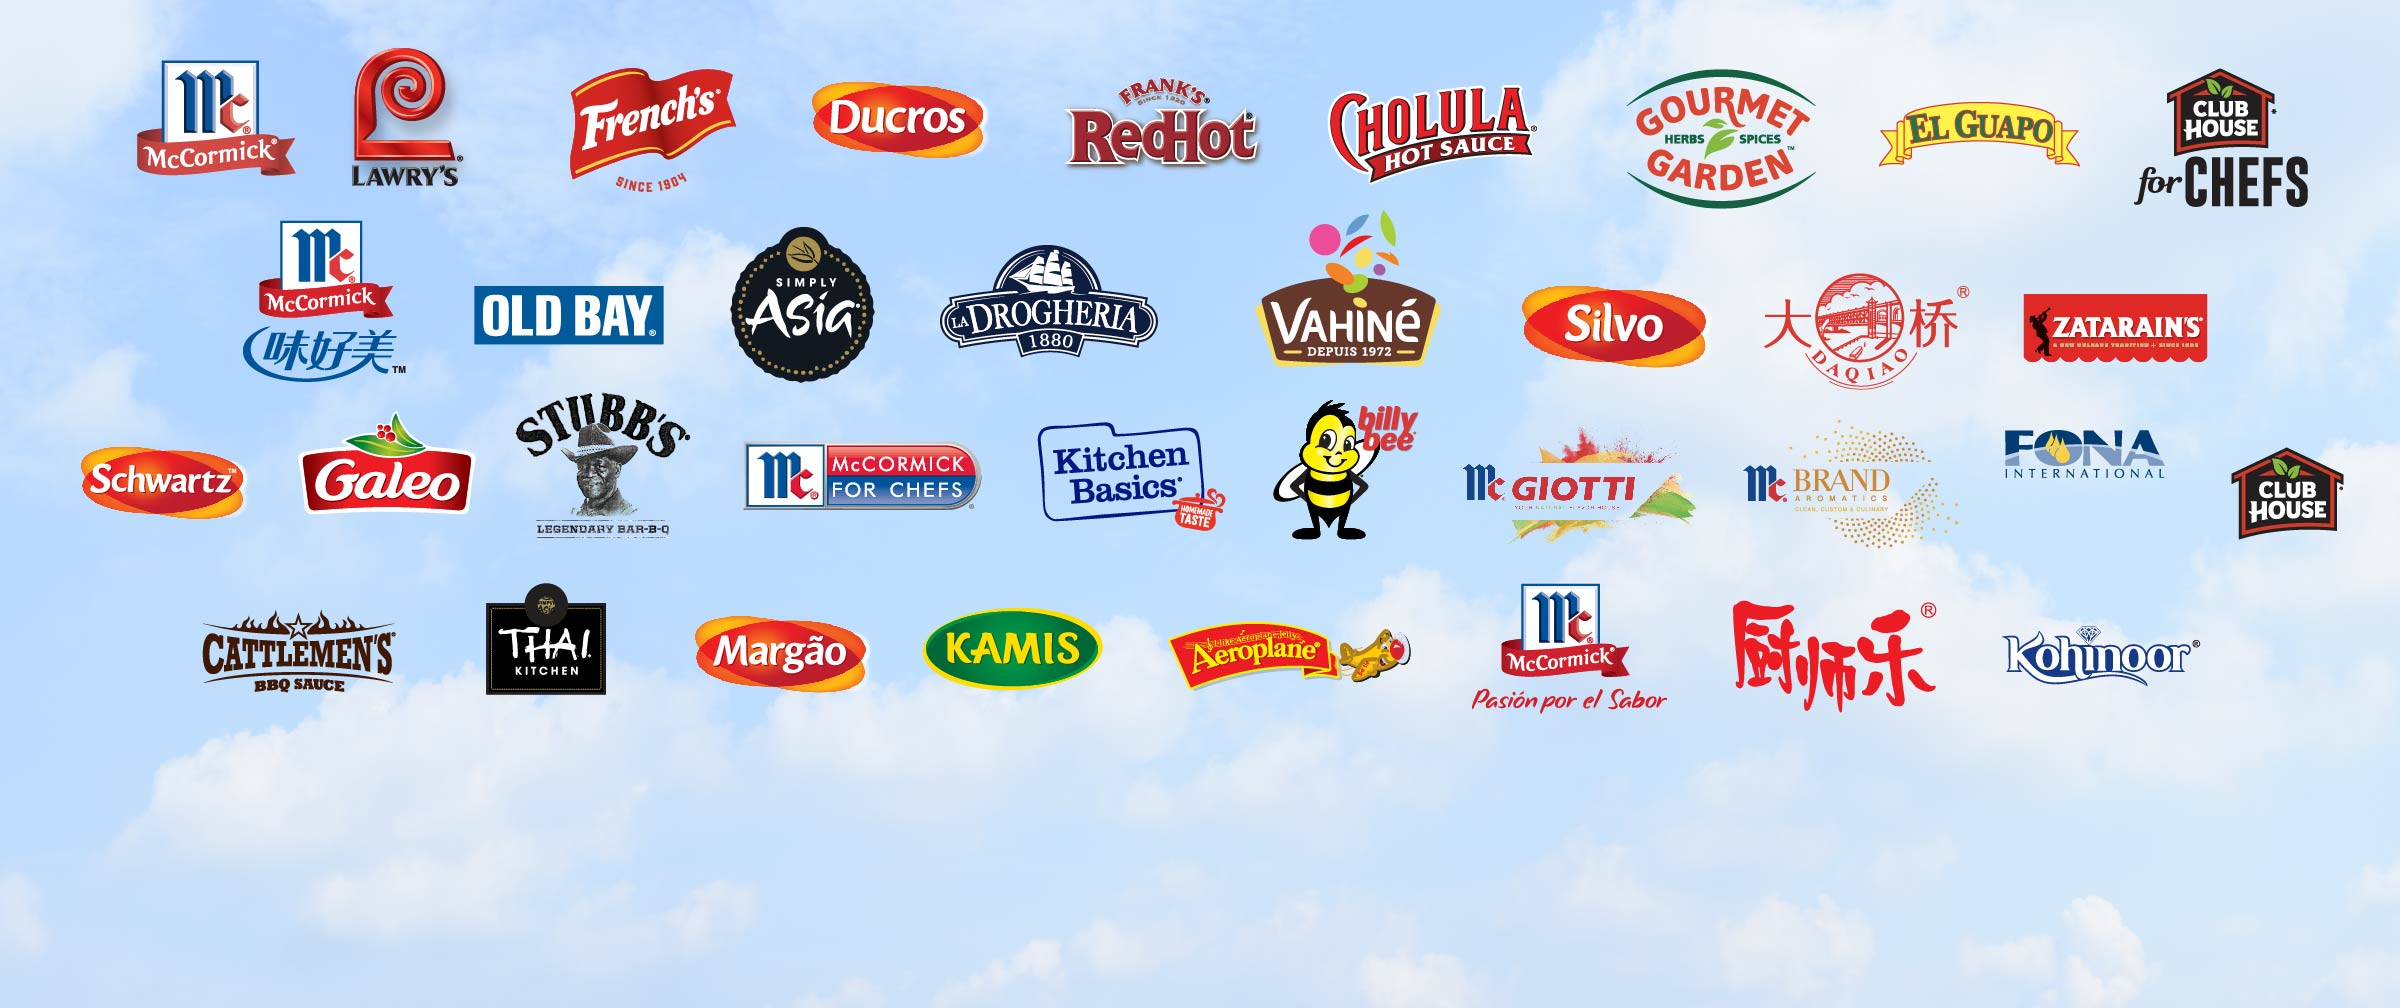 McCormick Global Brands Logos; What brands does McCormick own